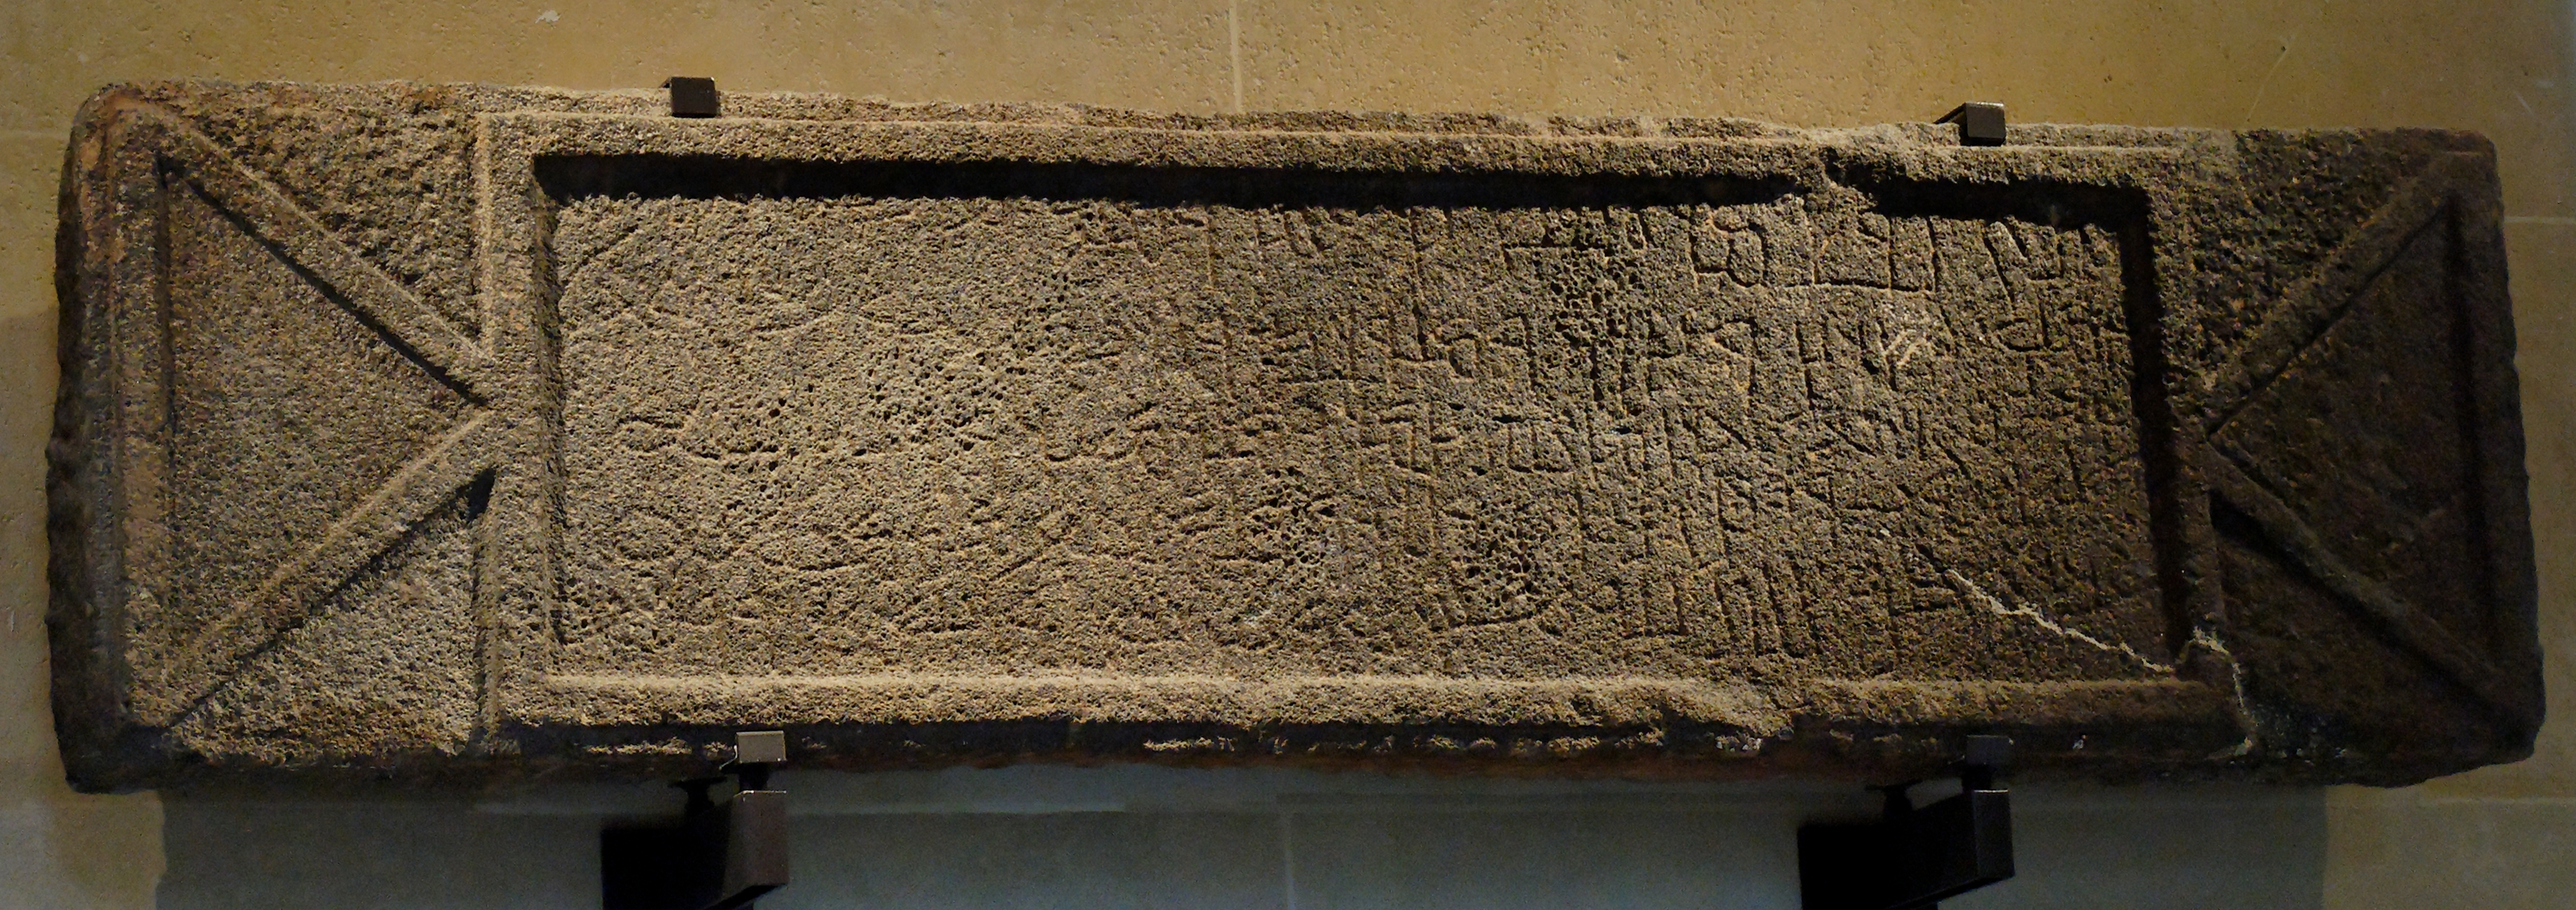 https://i1.wp.com/upload.wikimedia.org/wikipedia/commons/9/97/Epitaph_Imru-l-Qays_Louvre_AO4083.jpg